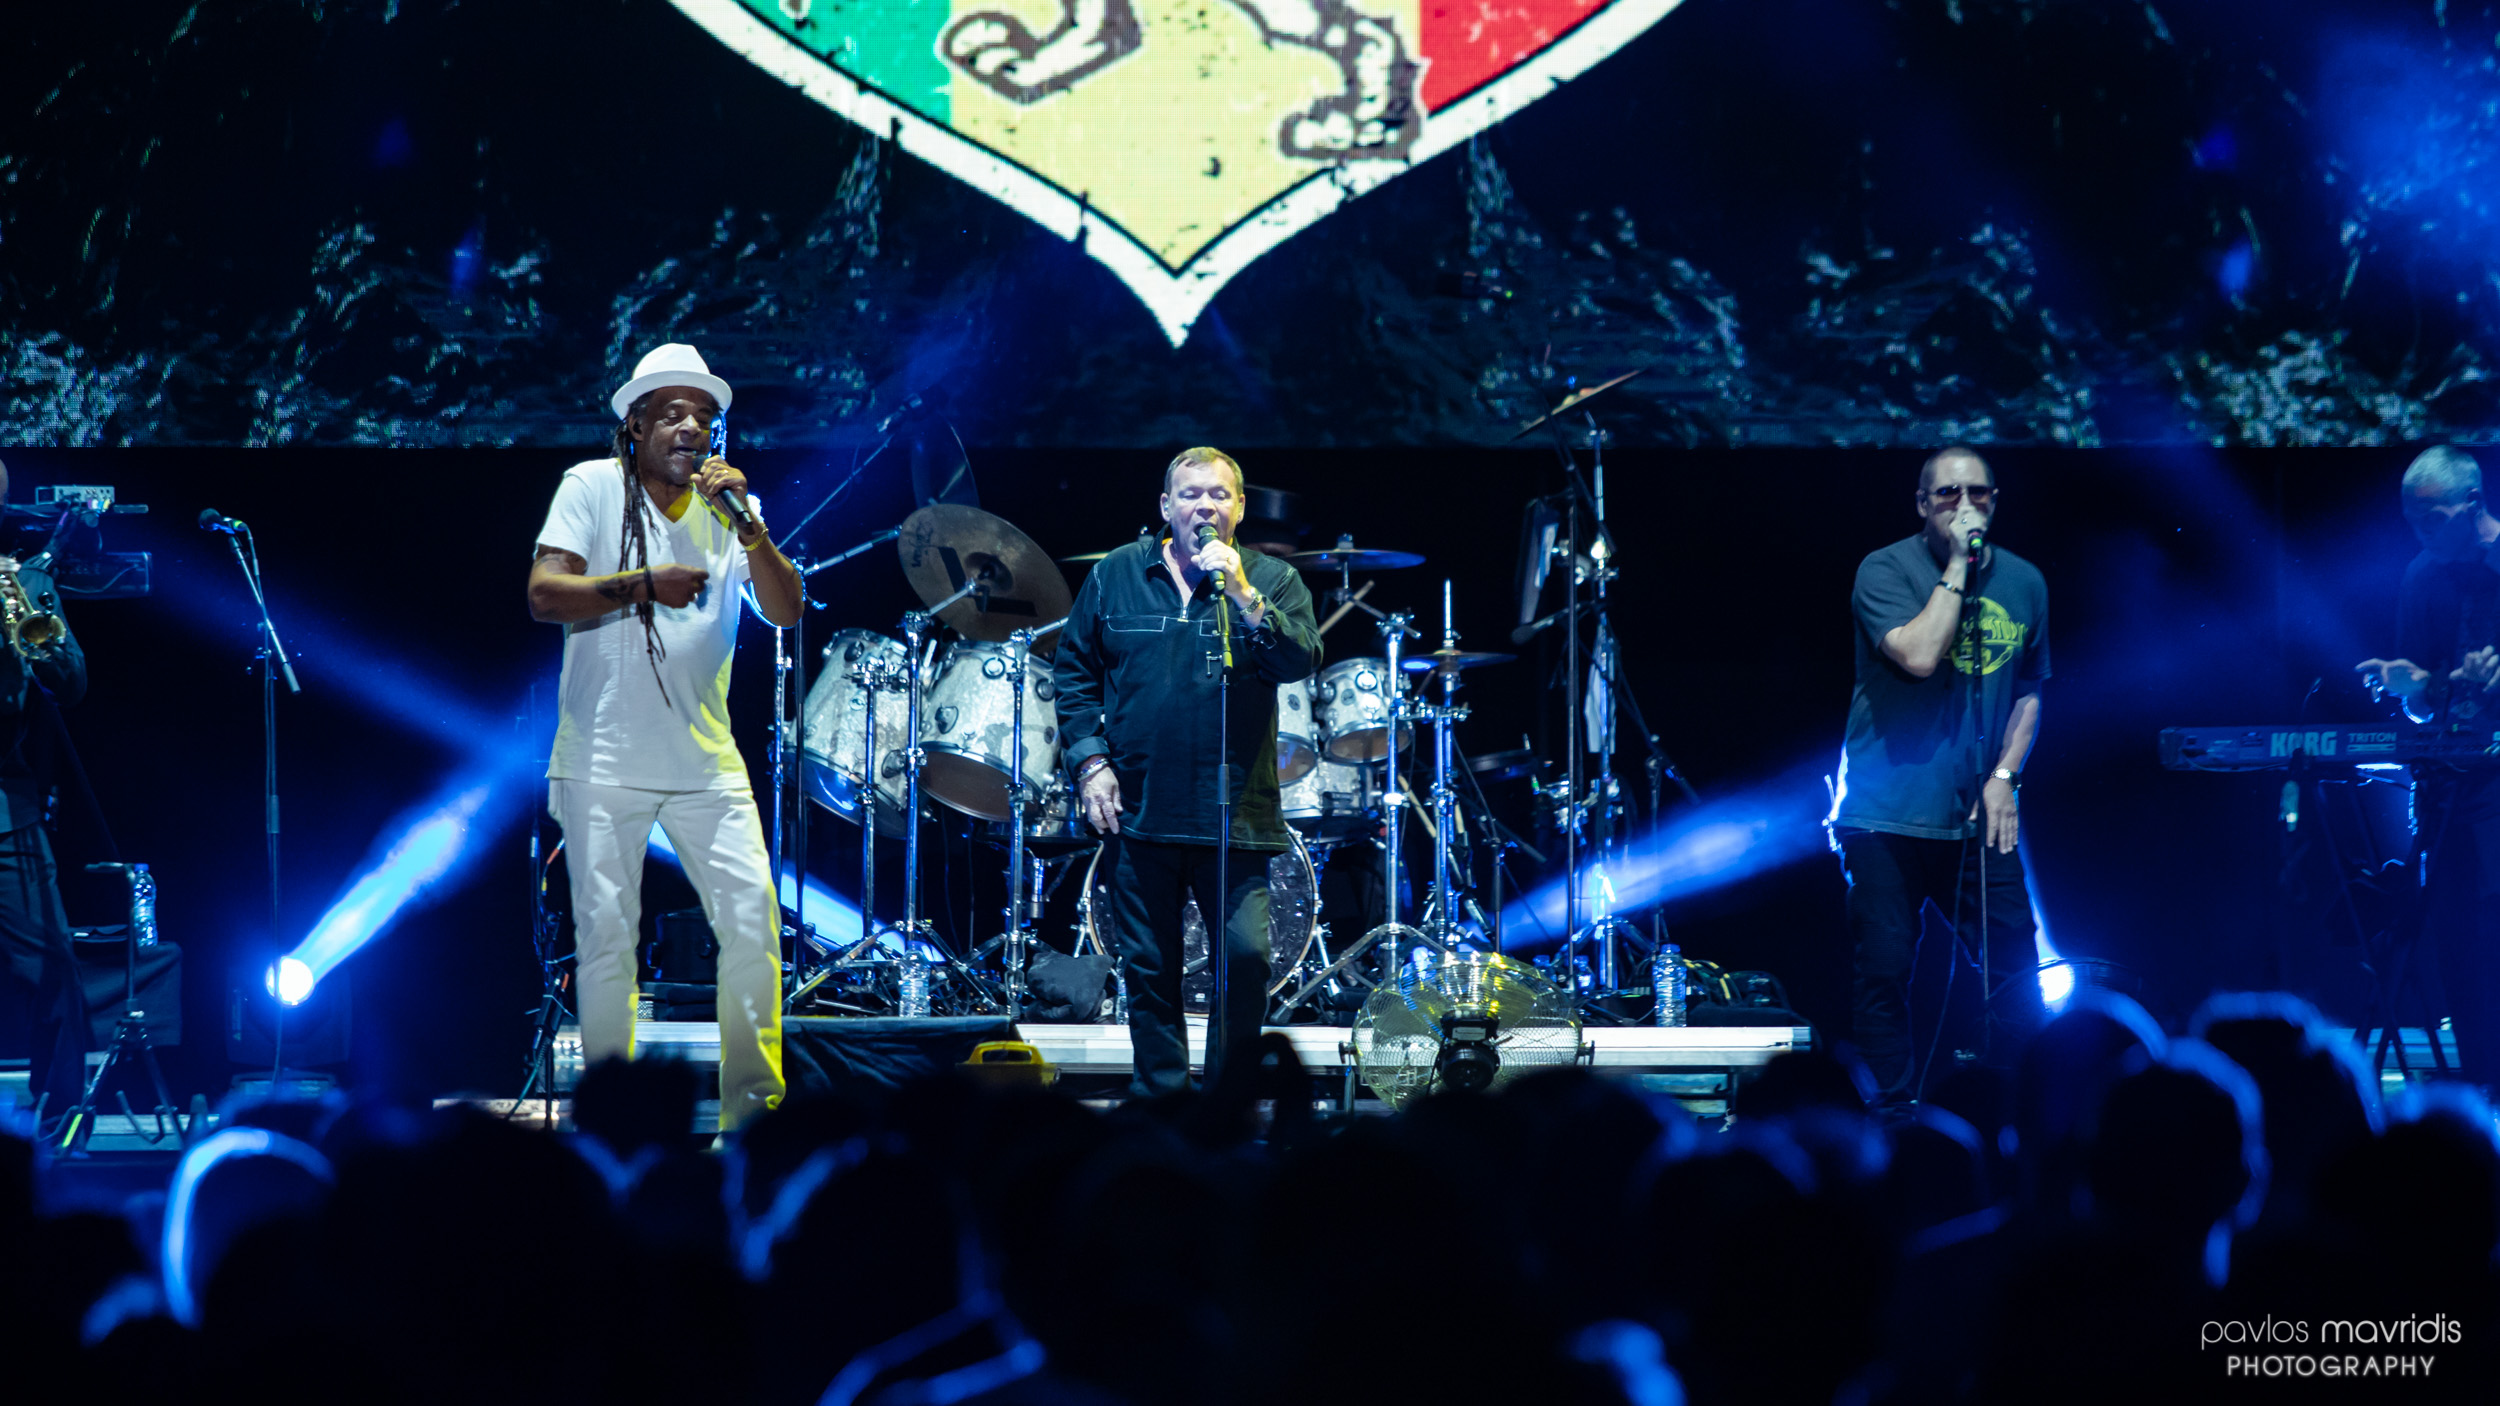 UB40 feat. Ali, Astro, Mickey_Release Athens Festival 2018_03_hires_web.jpg